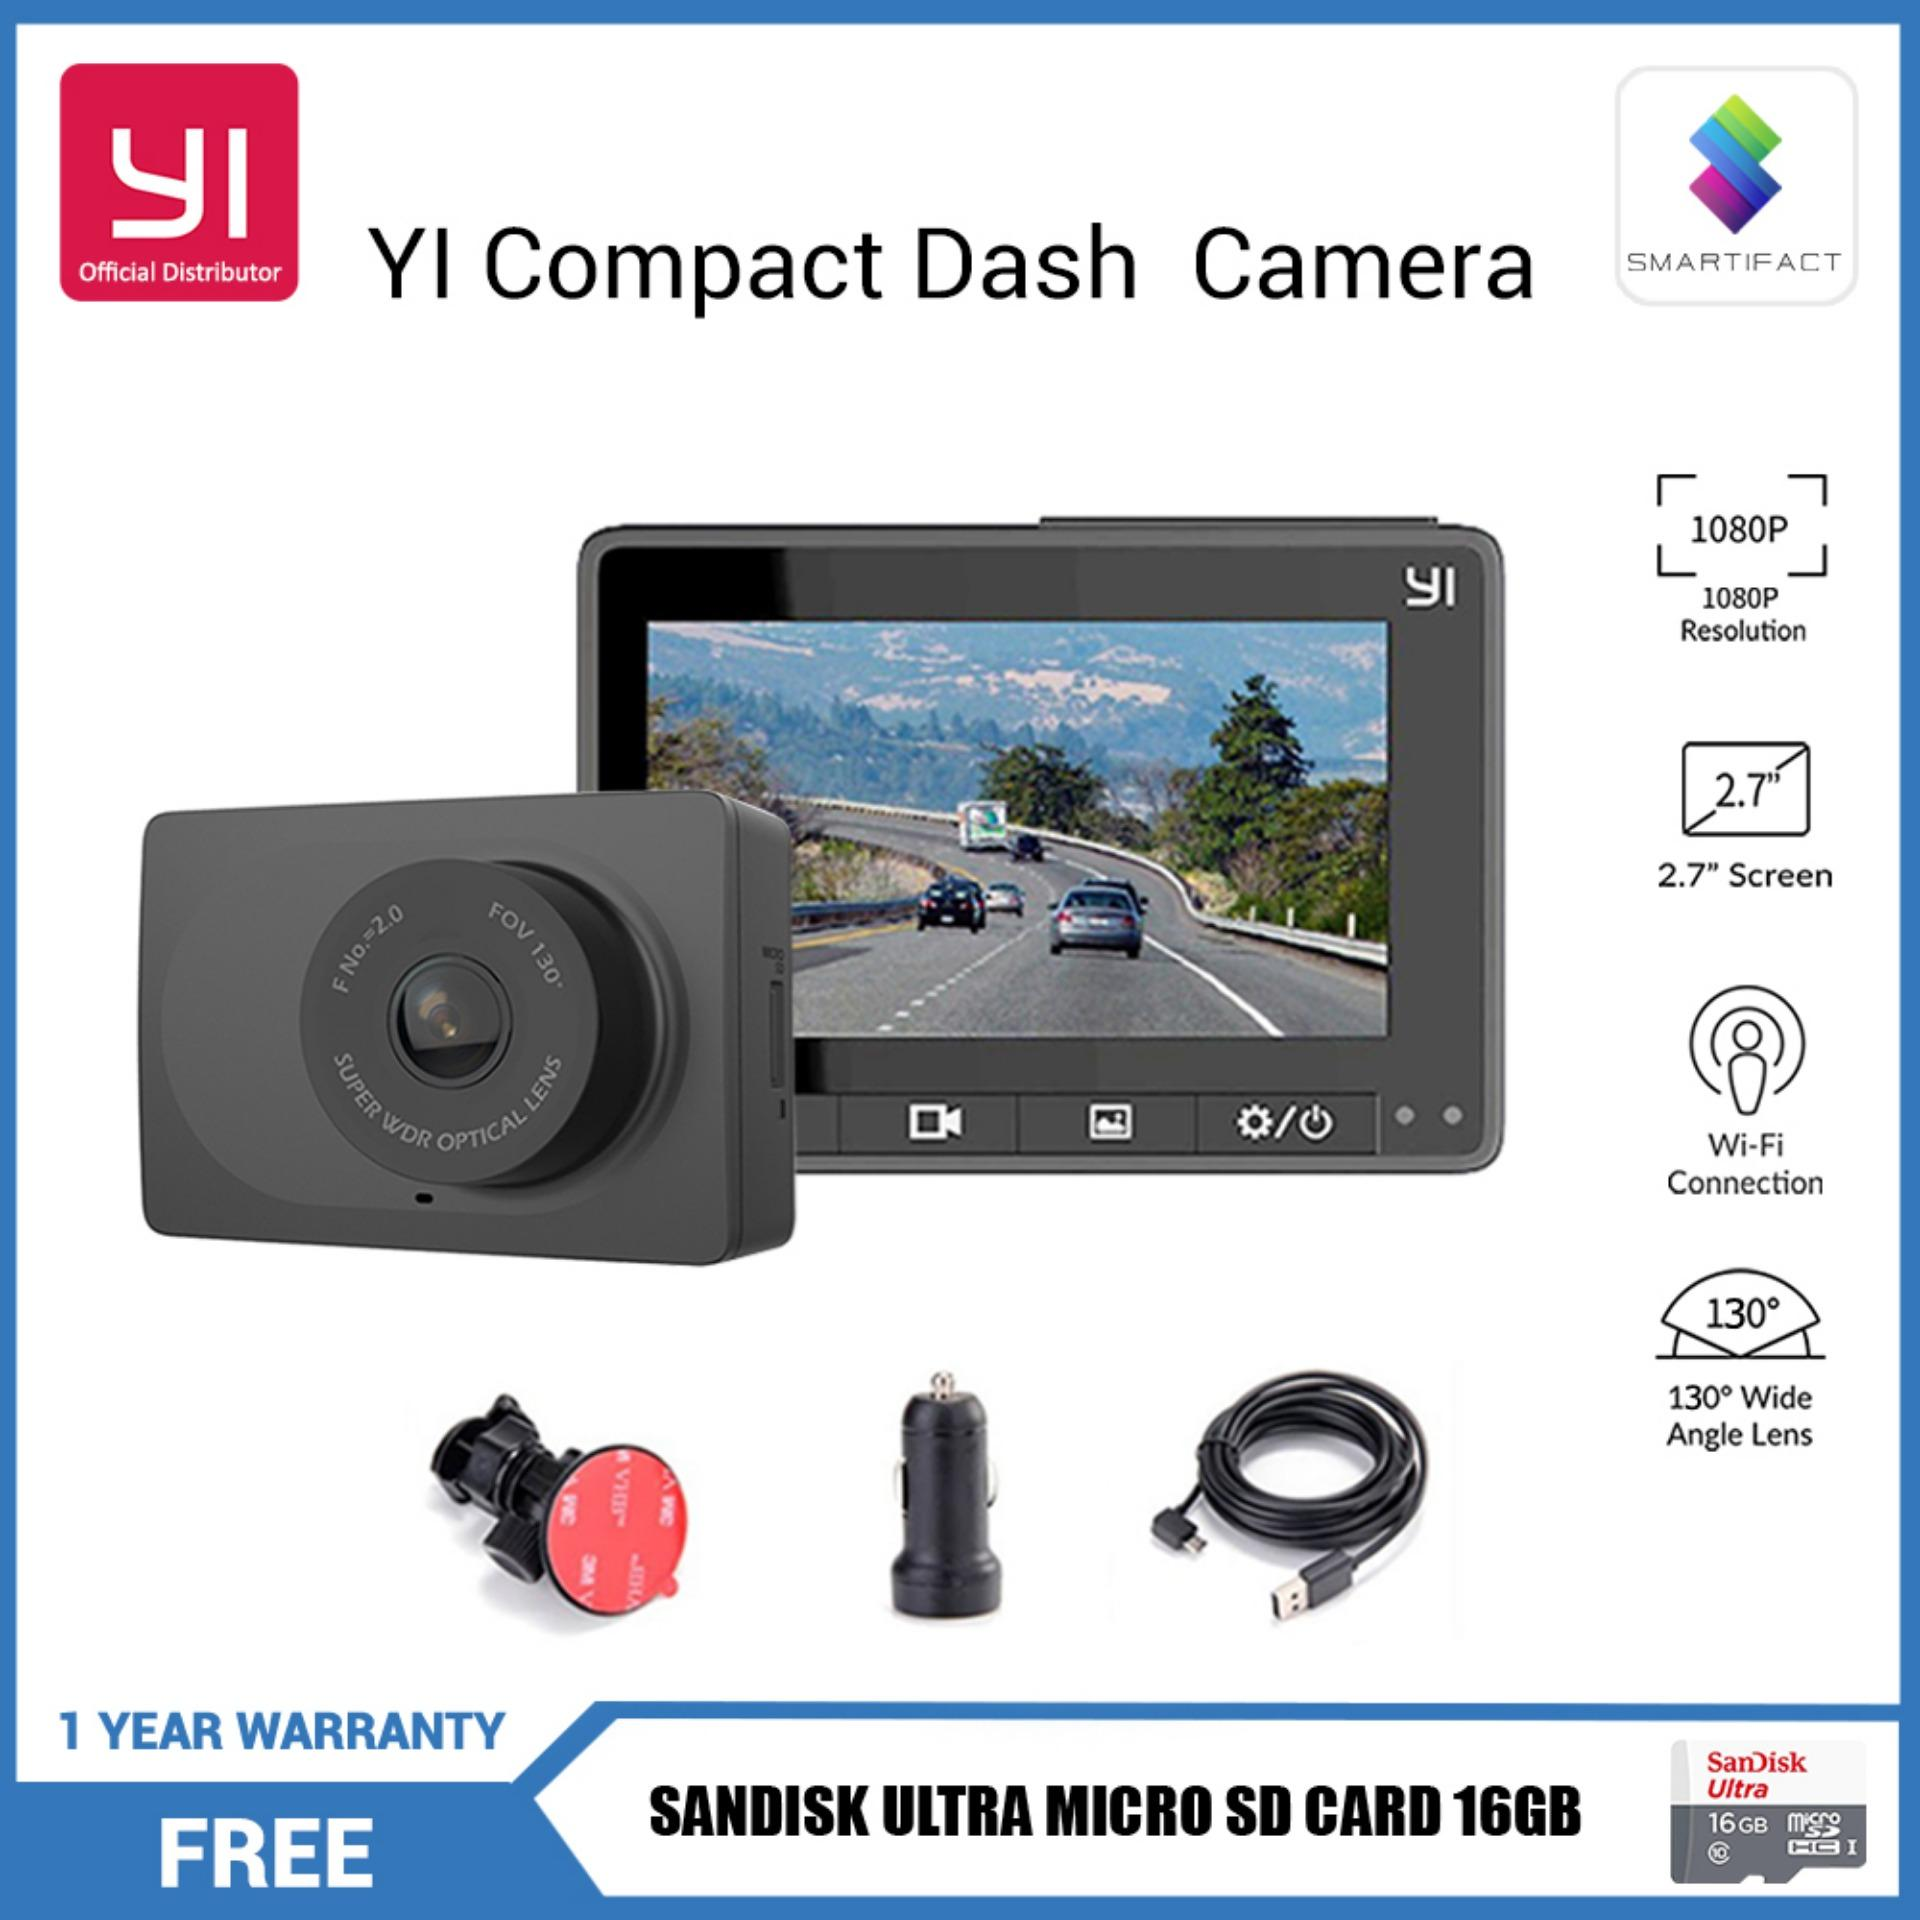 YI Compact Dash Cam 1080p Full HD Car Dashboard Camera with 2.7 inch LCD Screen 130 WDR Lens G-Sensor Night Vision Black English Version with SanDisk 16GB Micro SD Card Xiaomi YI (Smartifact)